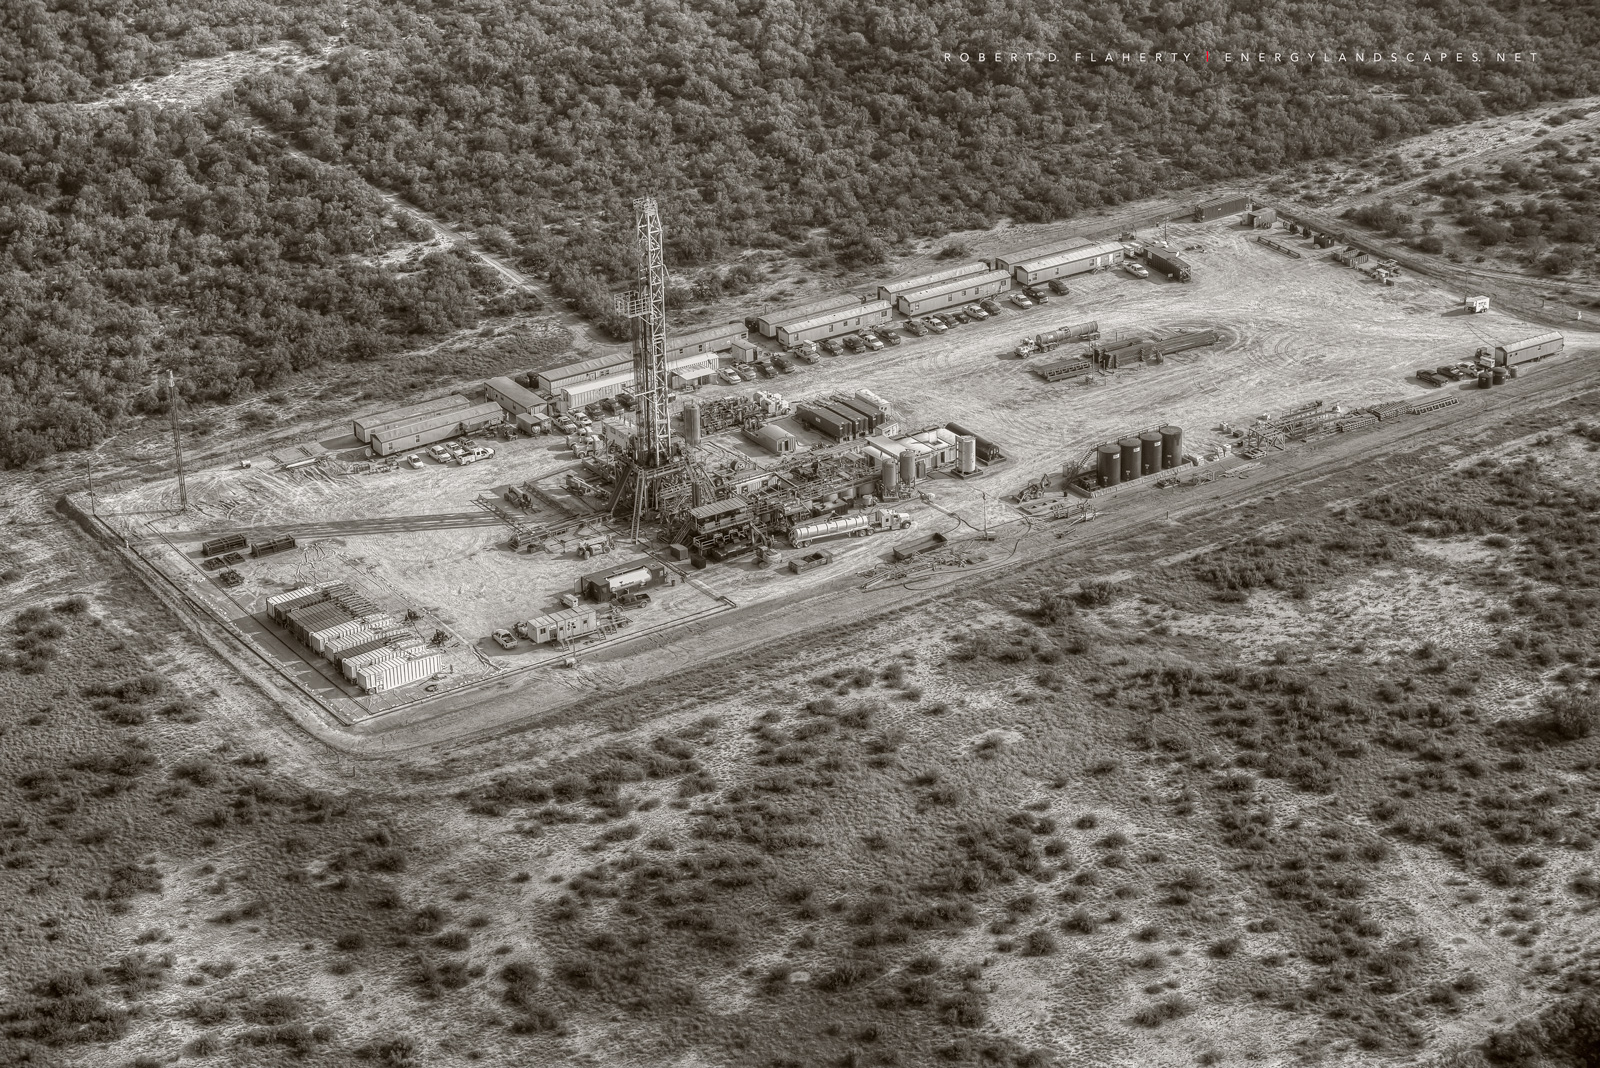 aerial photography, aerial oil & gas photography, aerial oilfield art, H&P Drilling, pad drilling, directional well, directional drilling, Eagle Ford, Texas, Kenyon Gyro, drilling rig, sepia, black & , photo